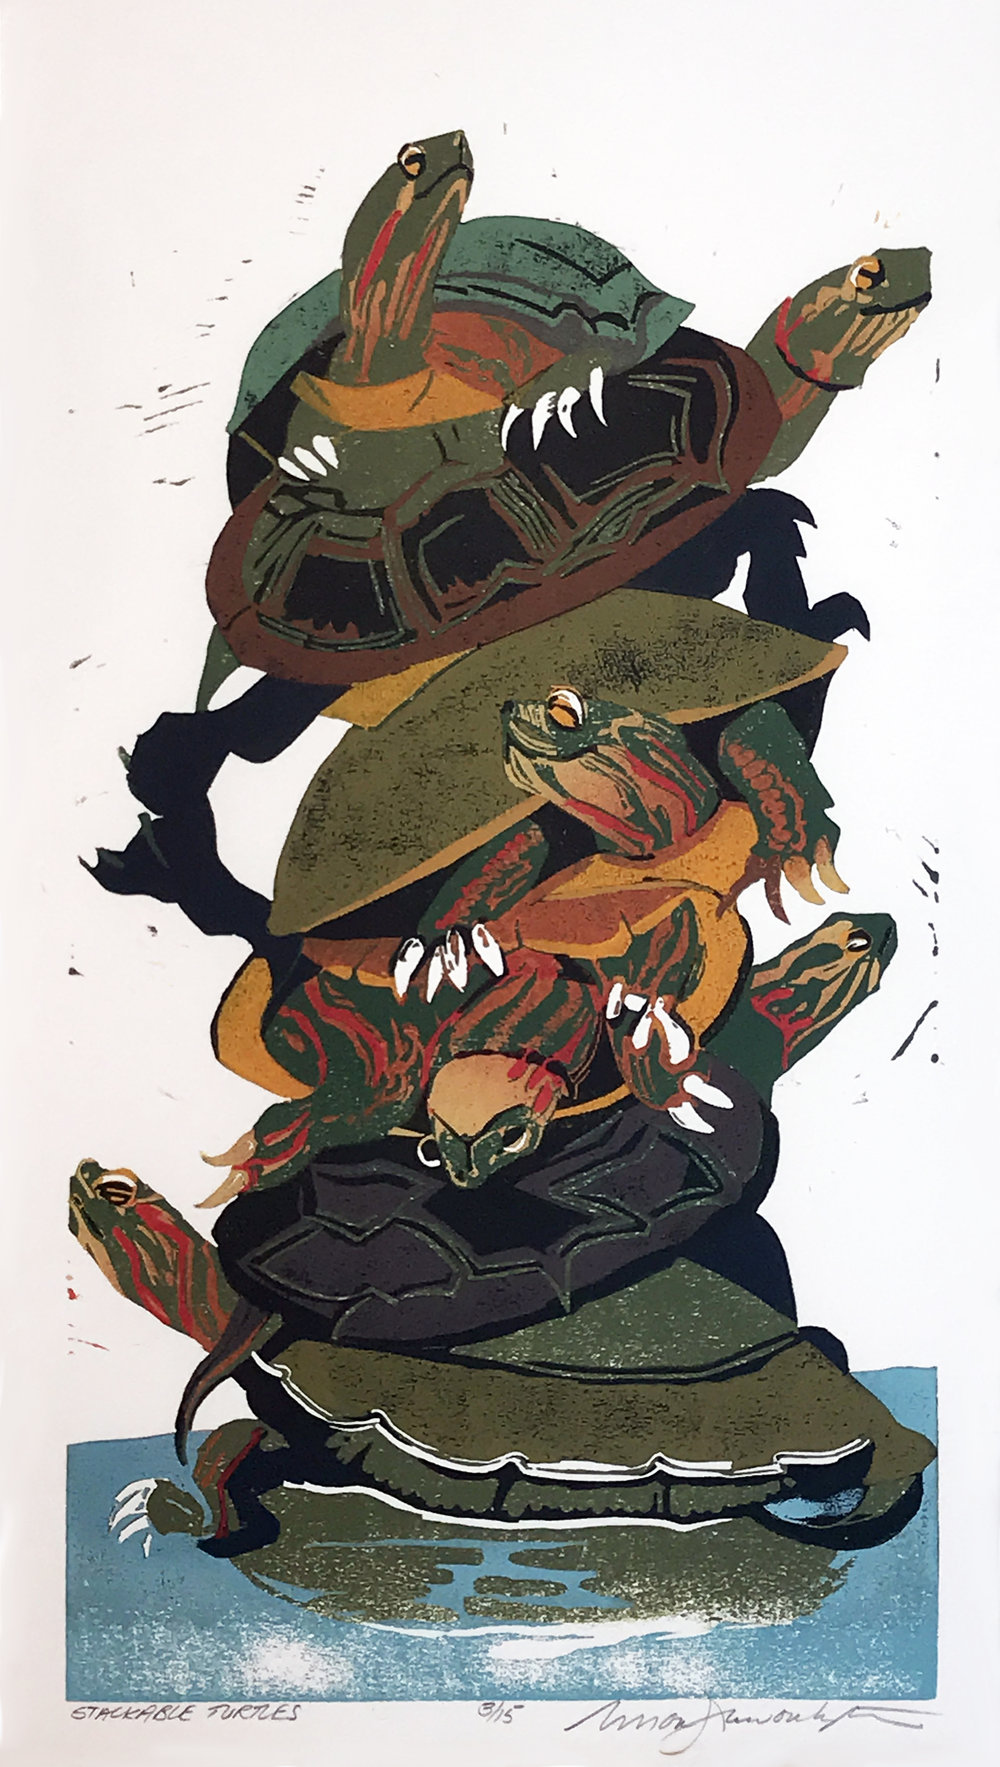 "Stackable Turtles (2/15) , reduction linoleum print on paper, 24"" x 15"" framed, $750"